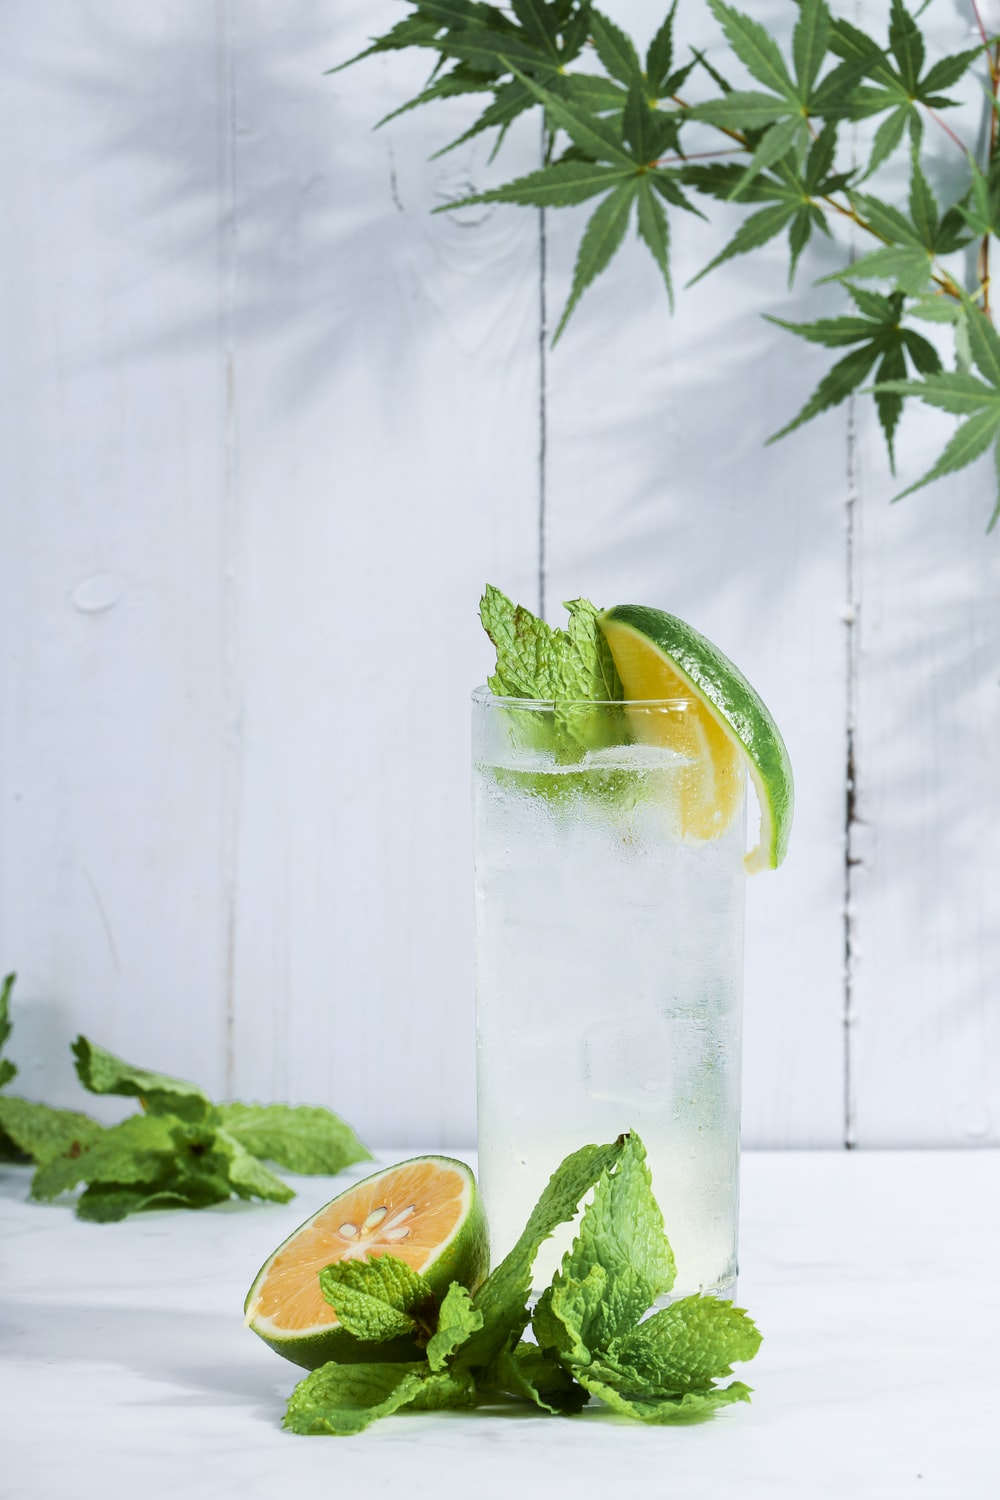 green lime beside drinking glass